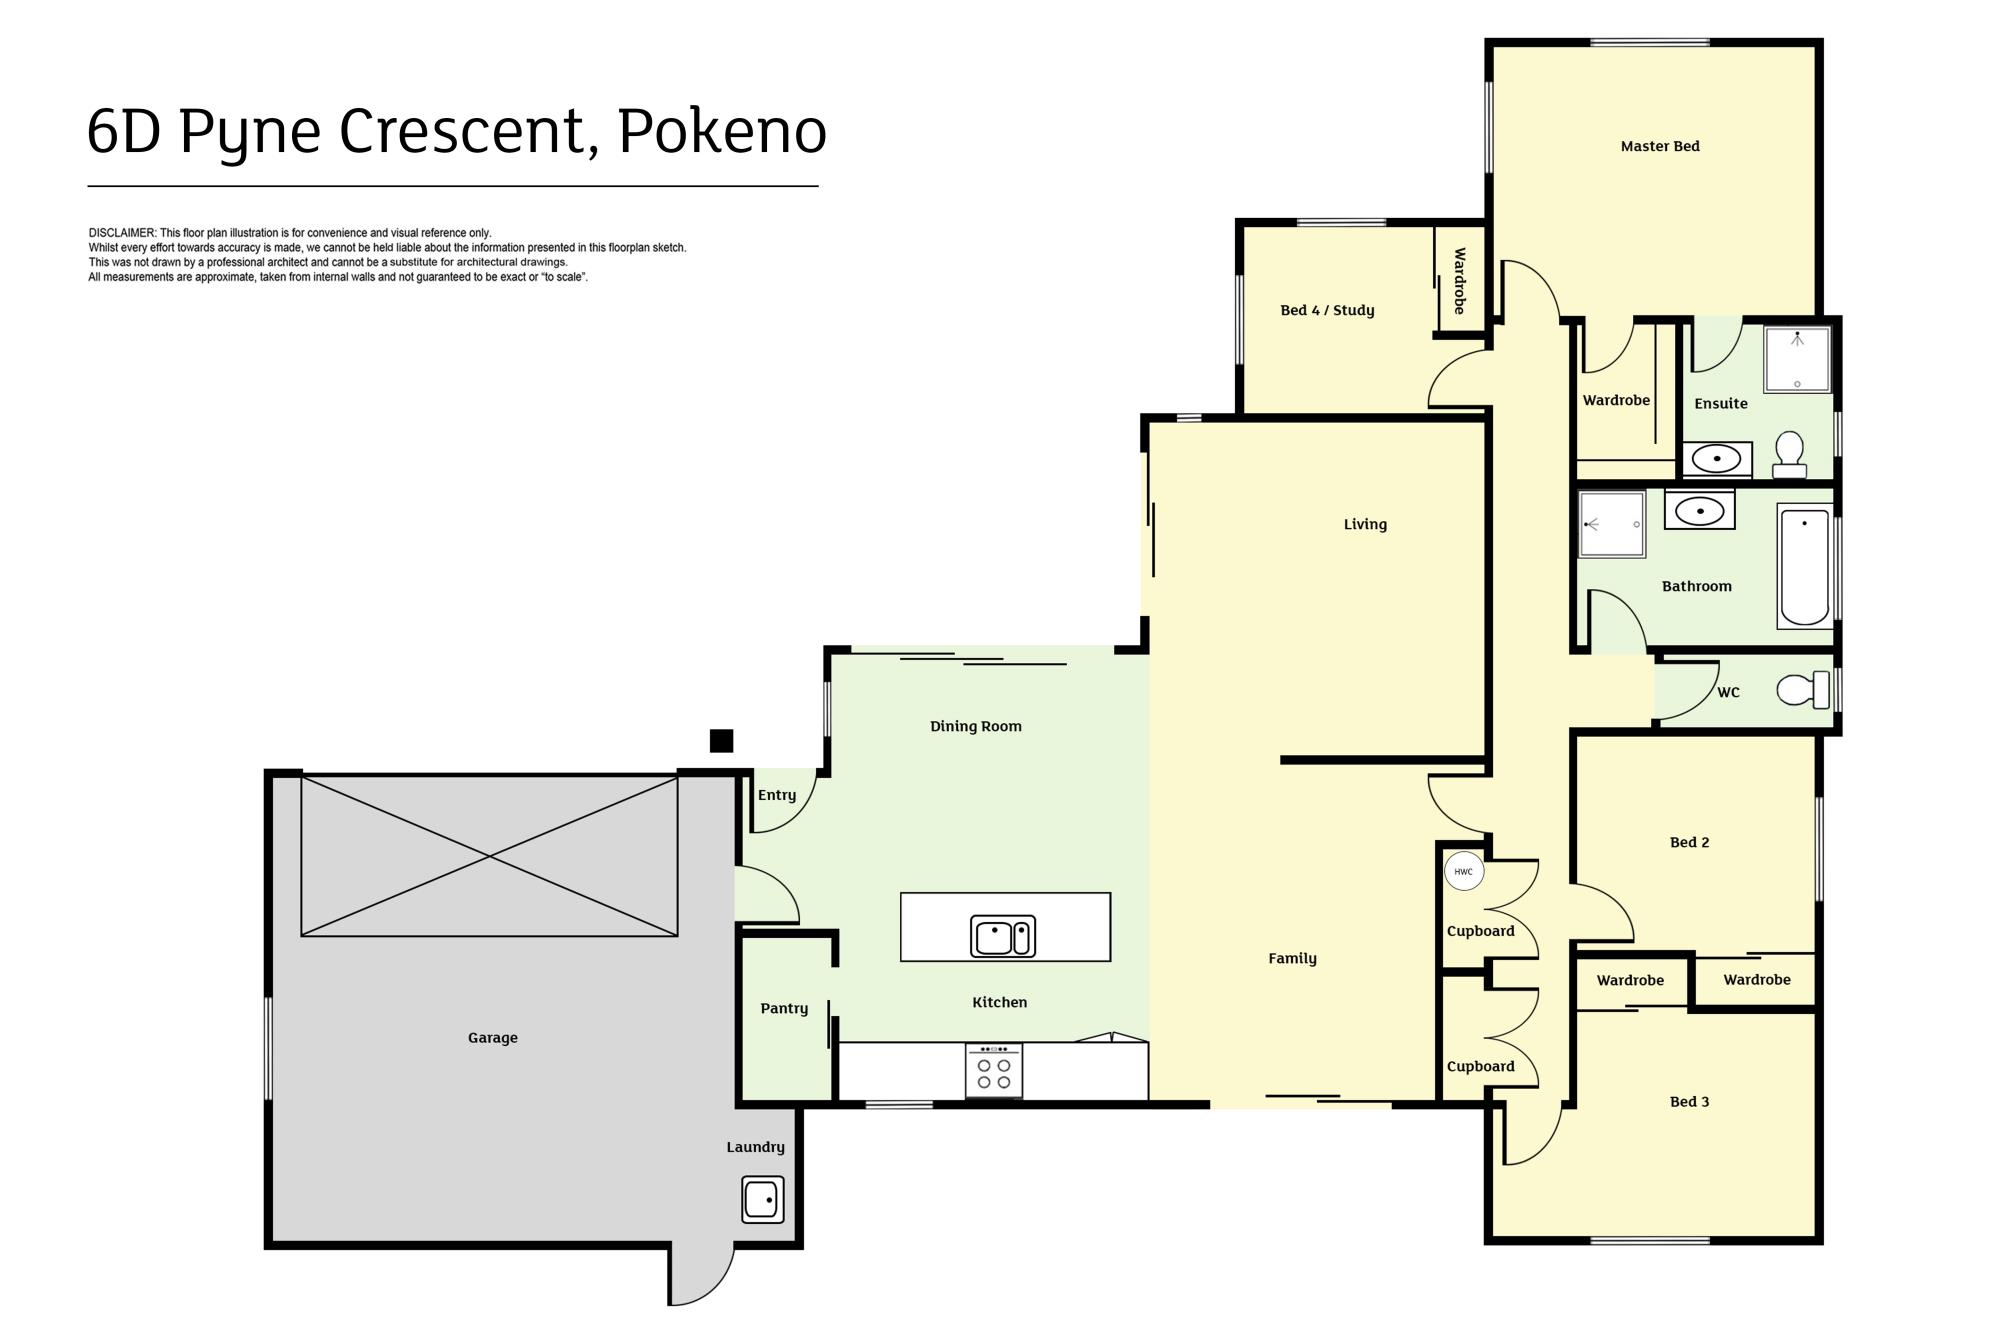 6D Pyne Crescent Pokenoproperty floorplan carousel image